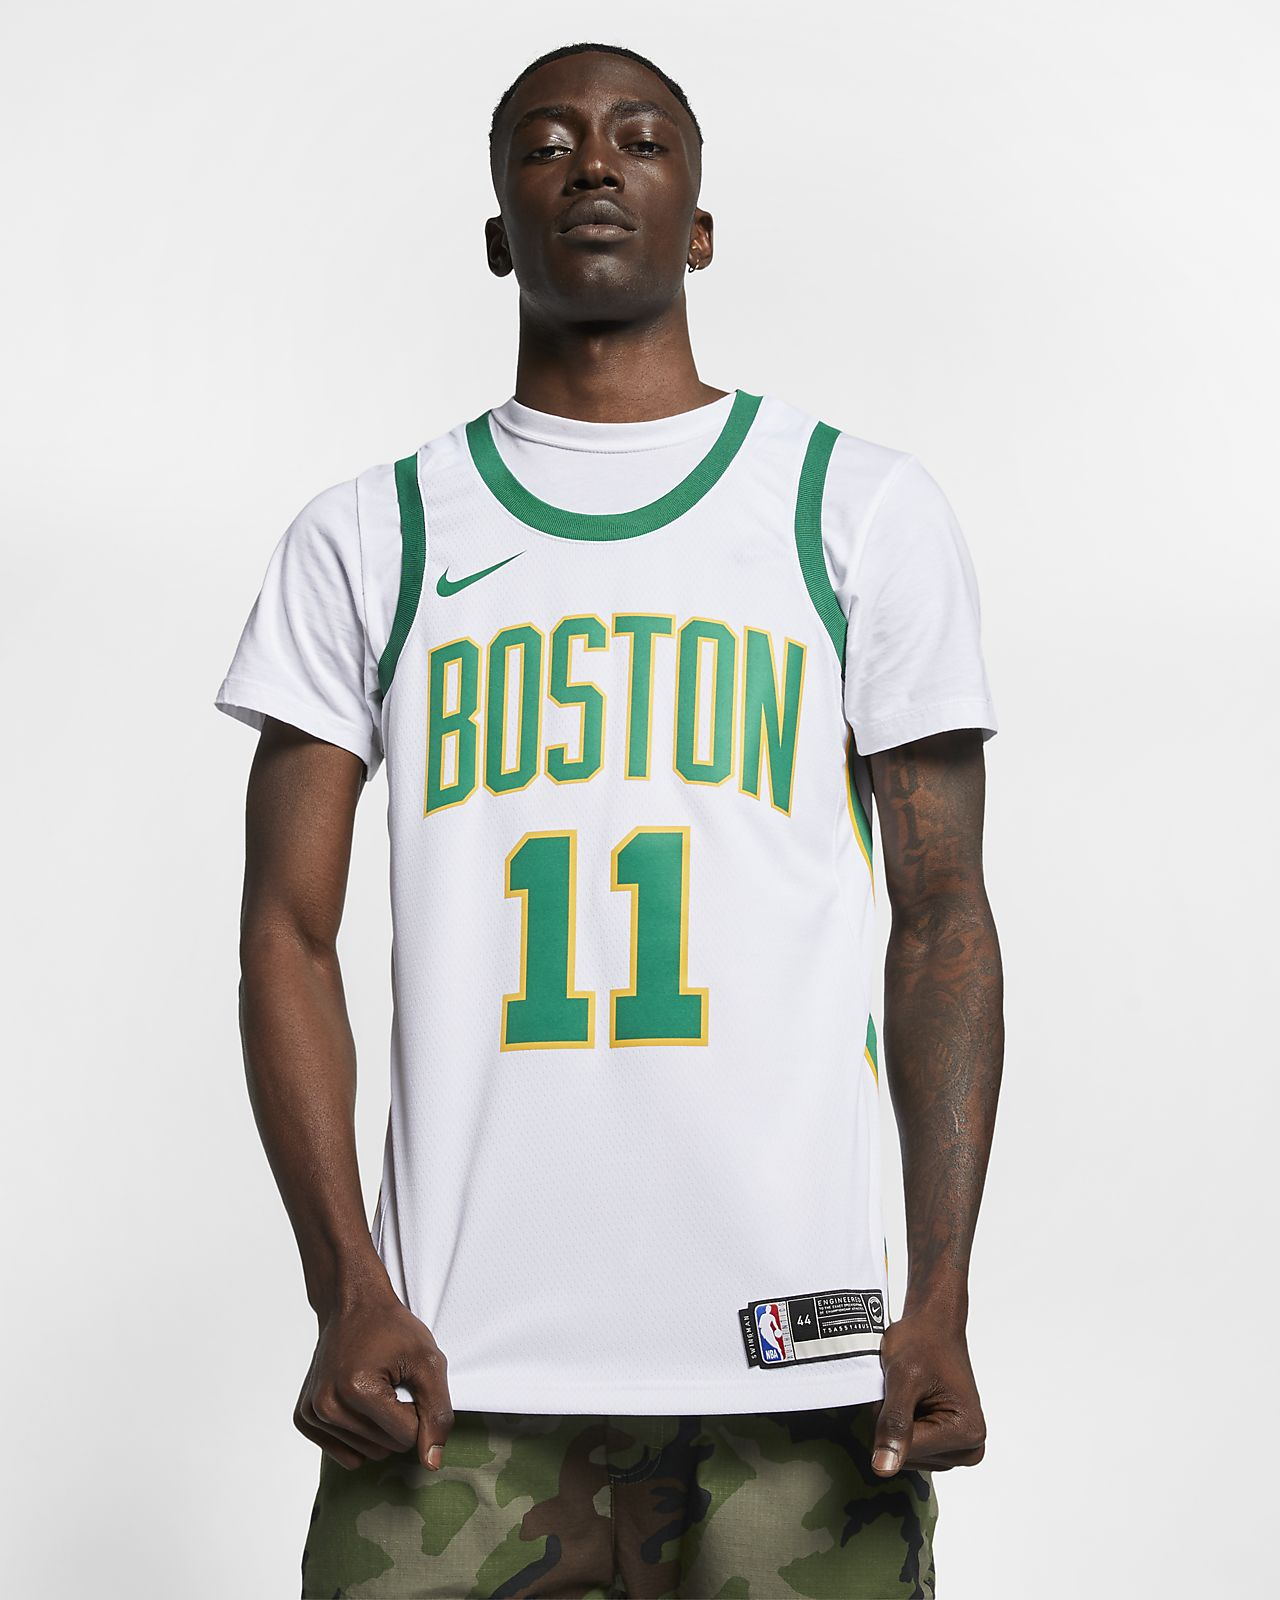 competitive price e6b75 edca1 celtics sleeved jersey